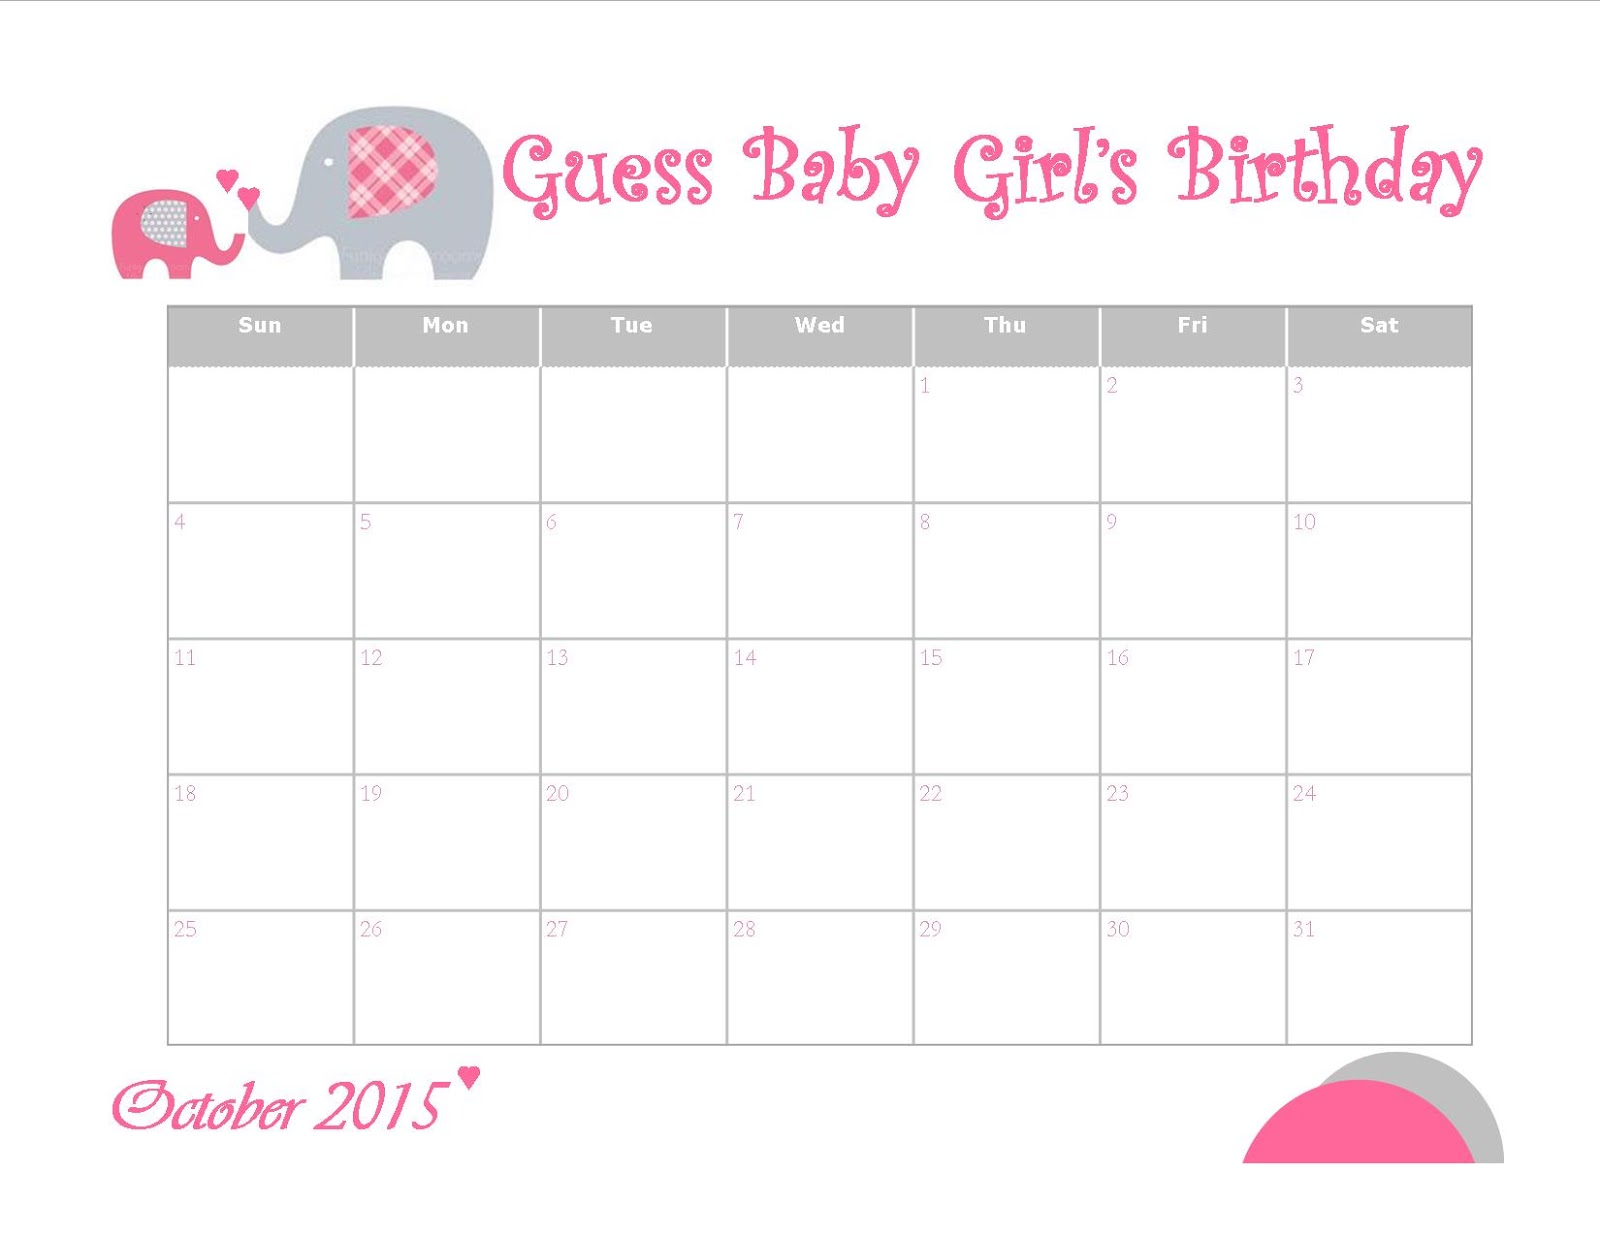 how to delete one birthday from google calendar